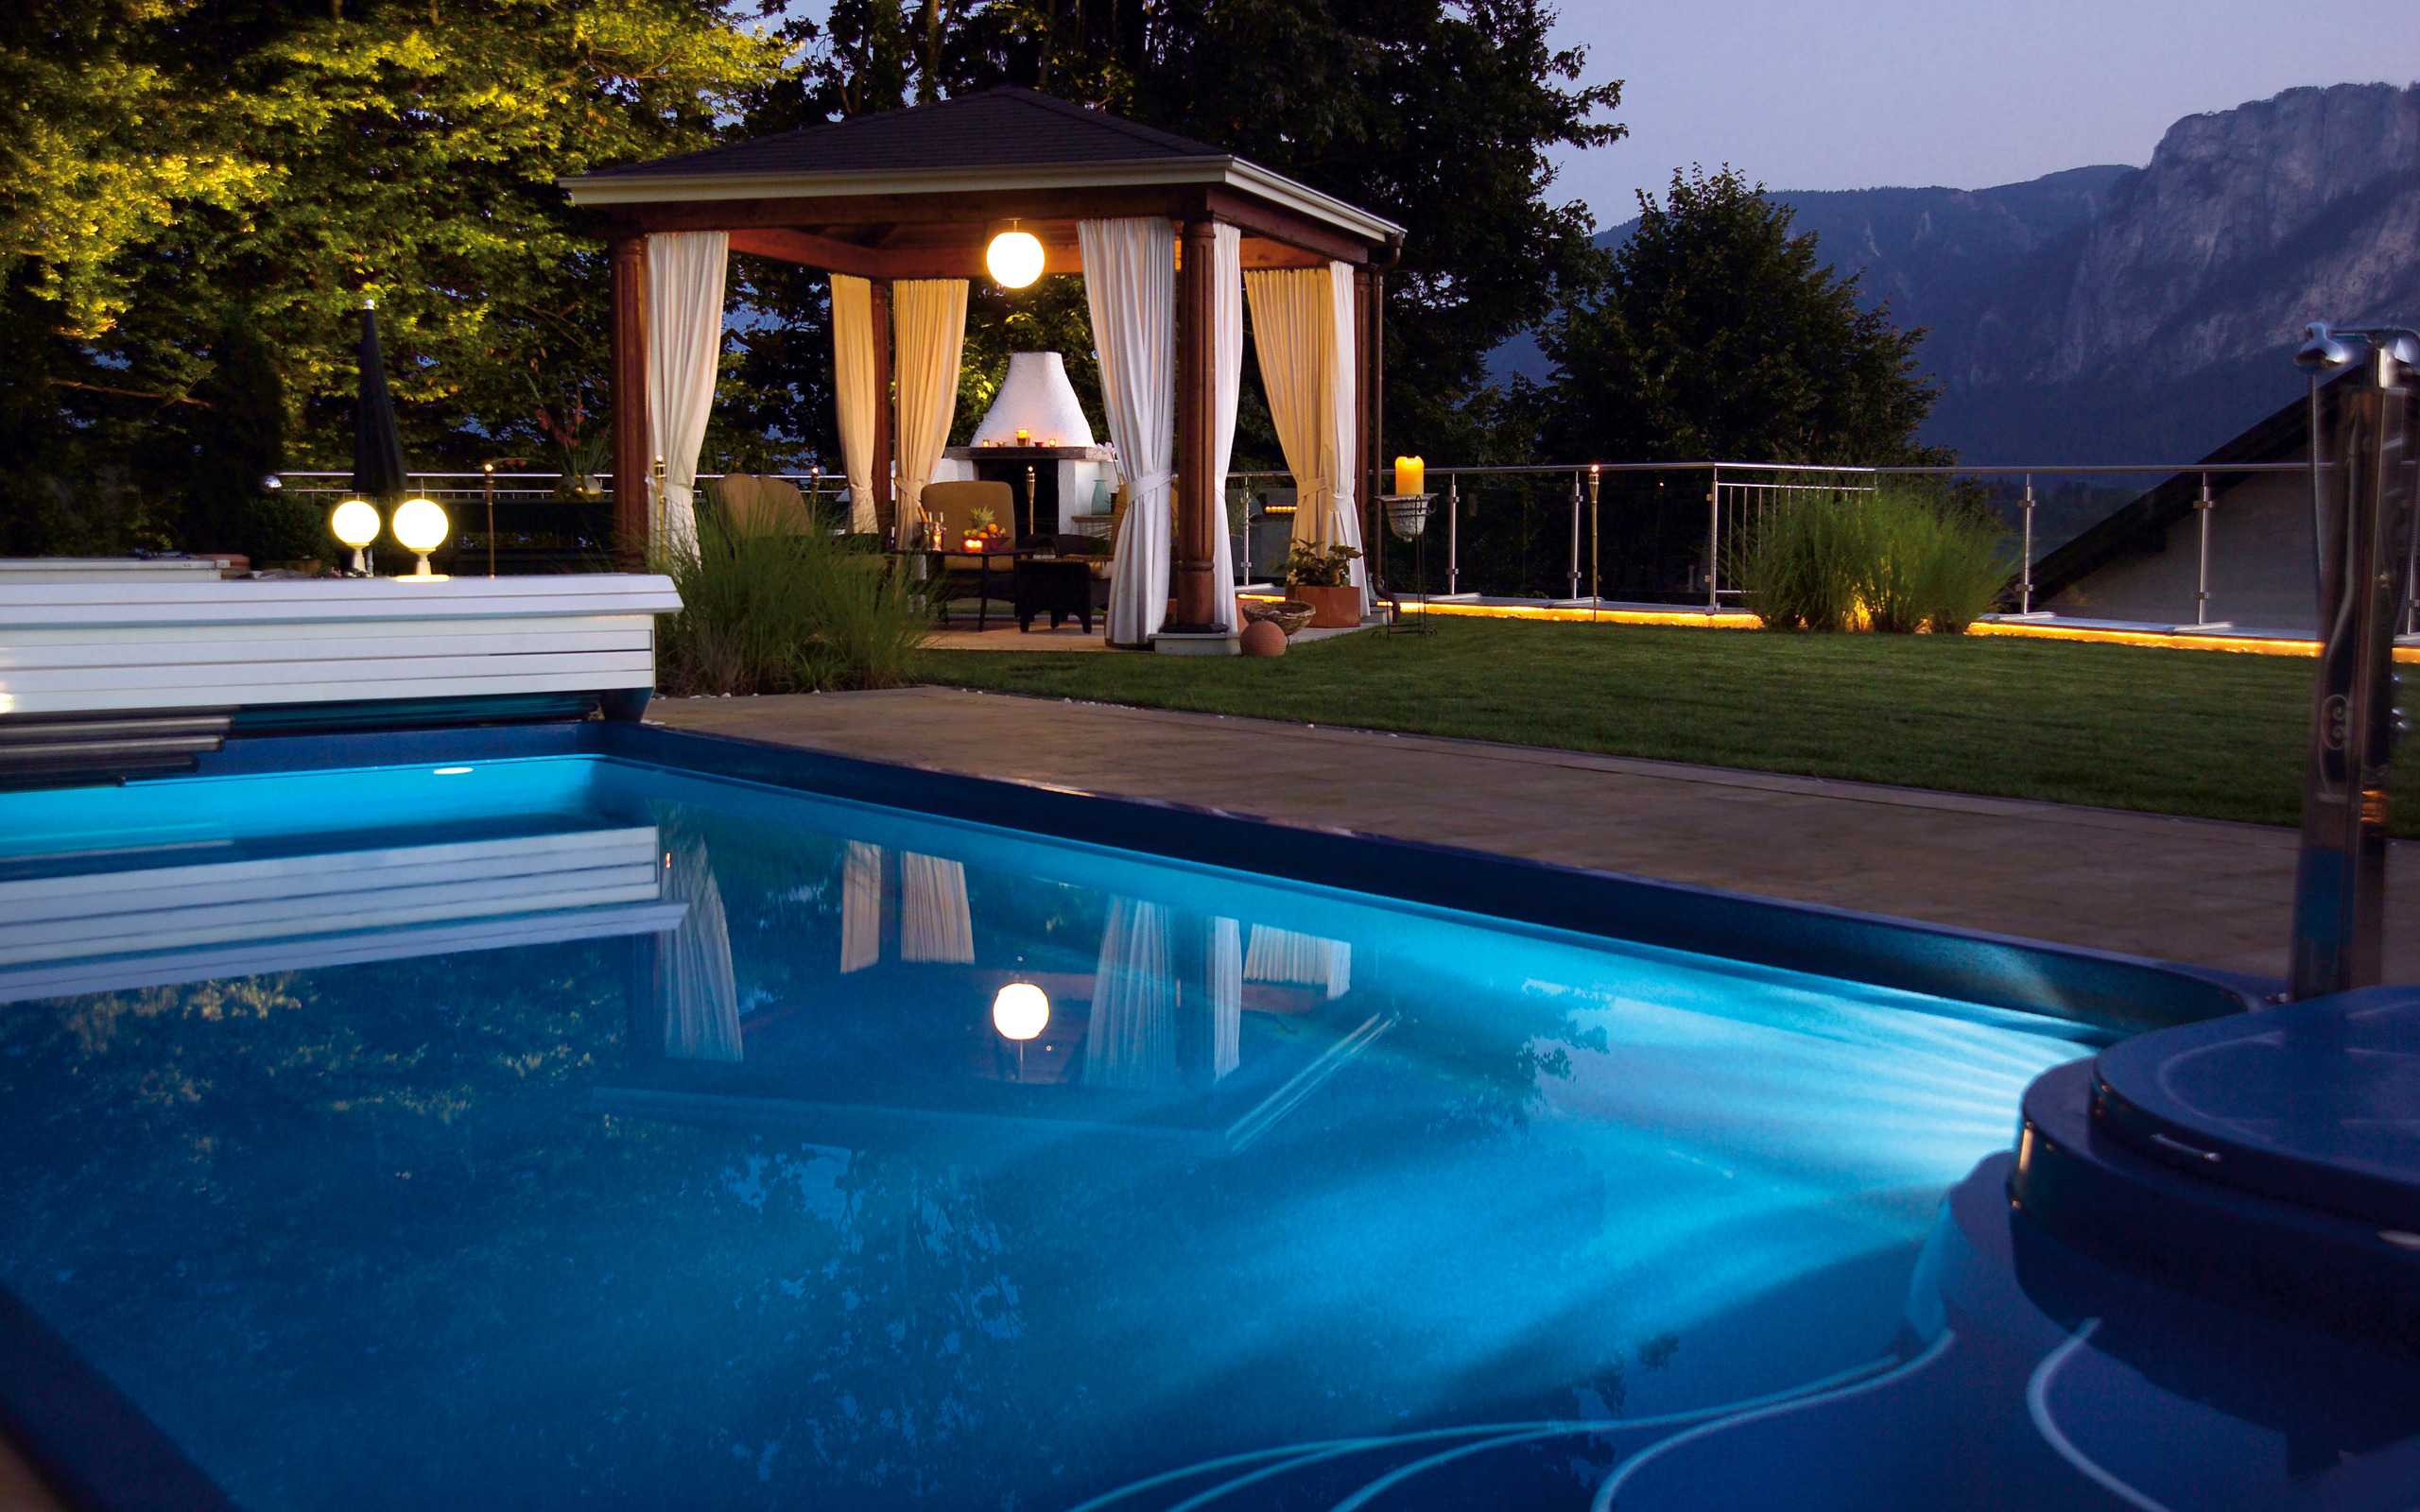 Interior_Pool_in_mountains_028444_.jpg